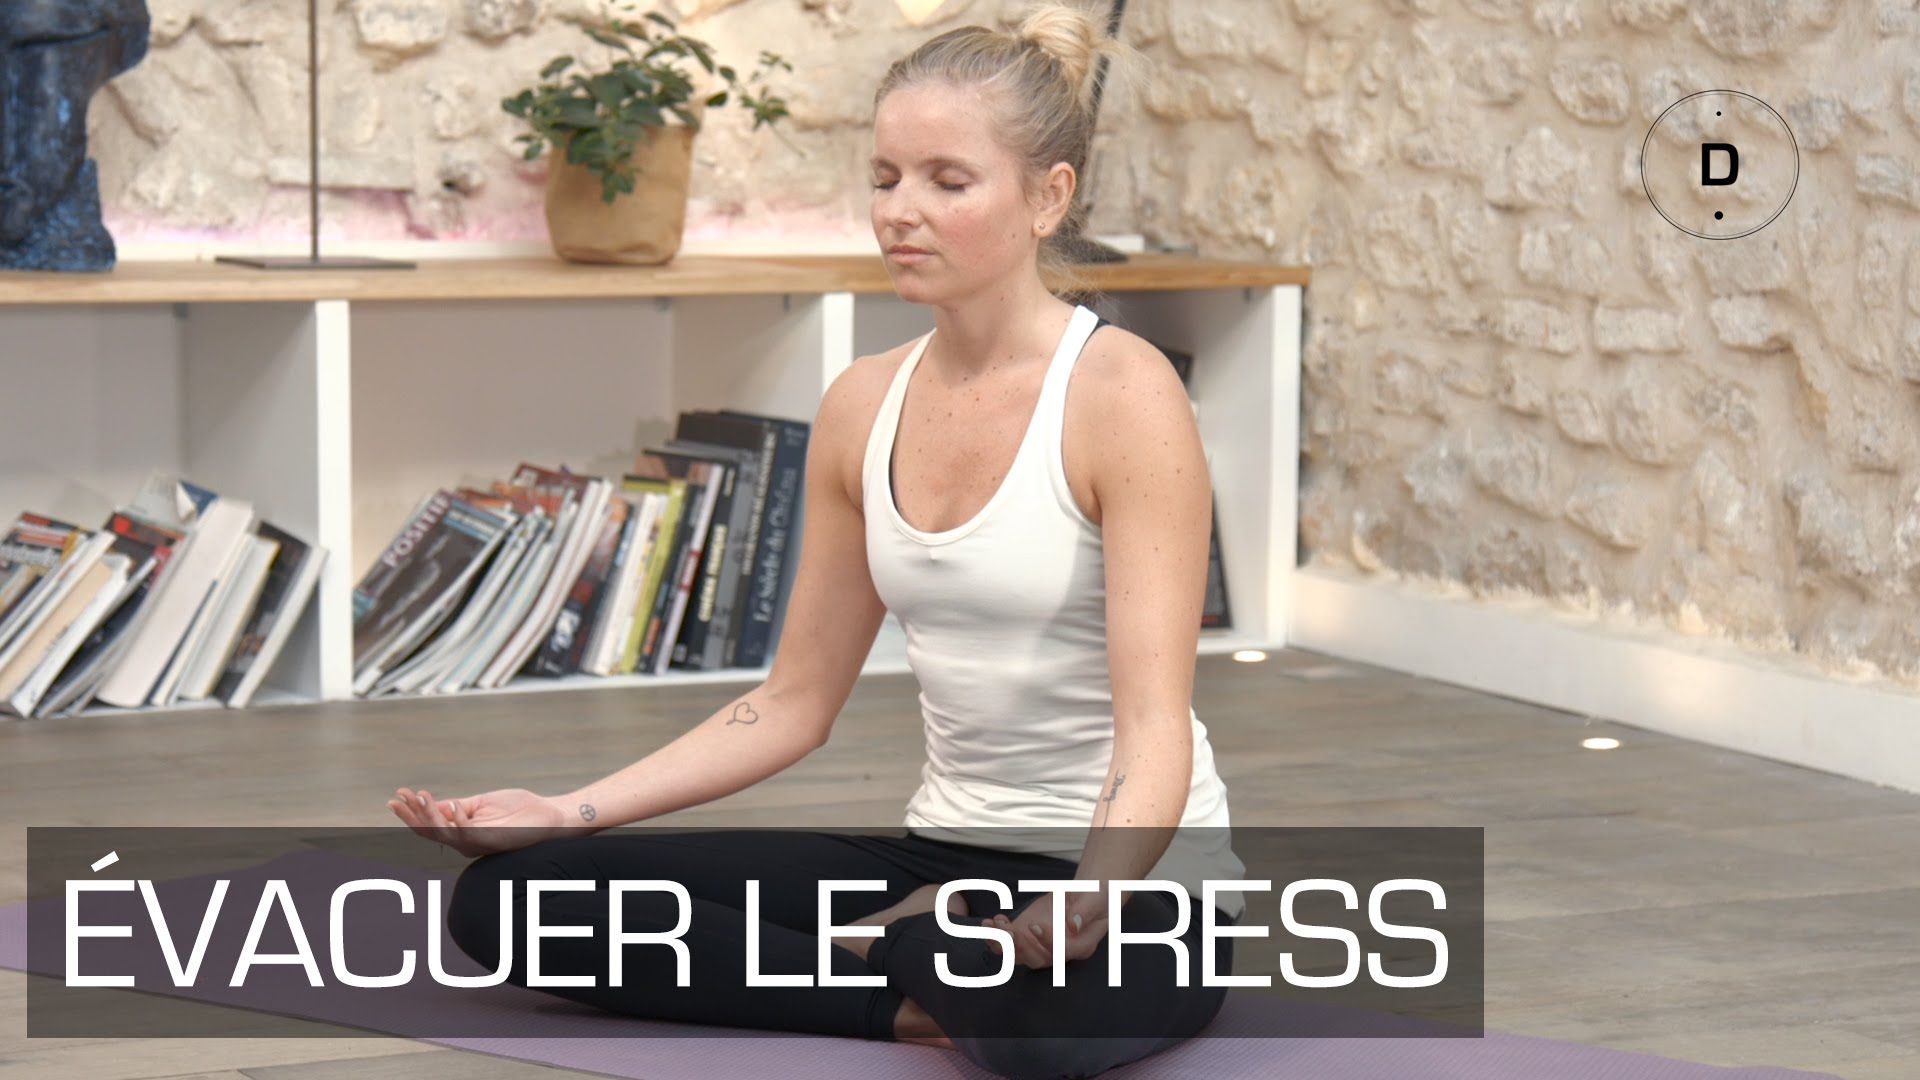 Yoga Master Class Yoga Anti Stress Videos De Yoga Yoga Pour